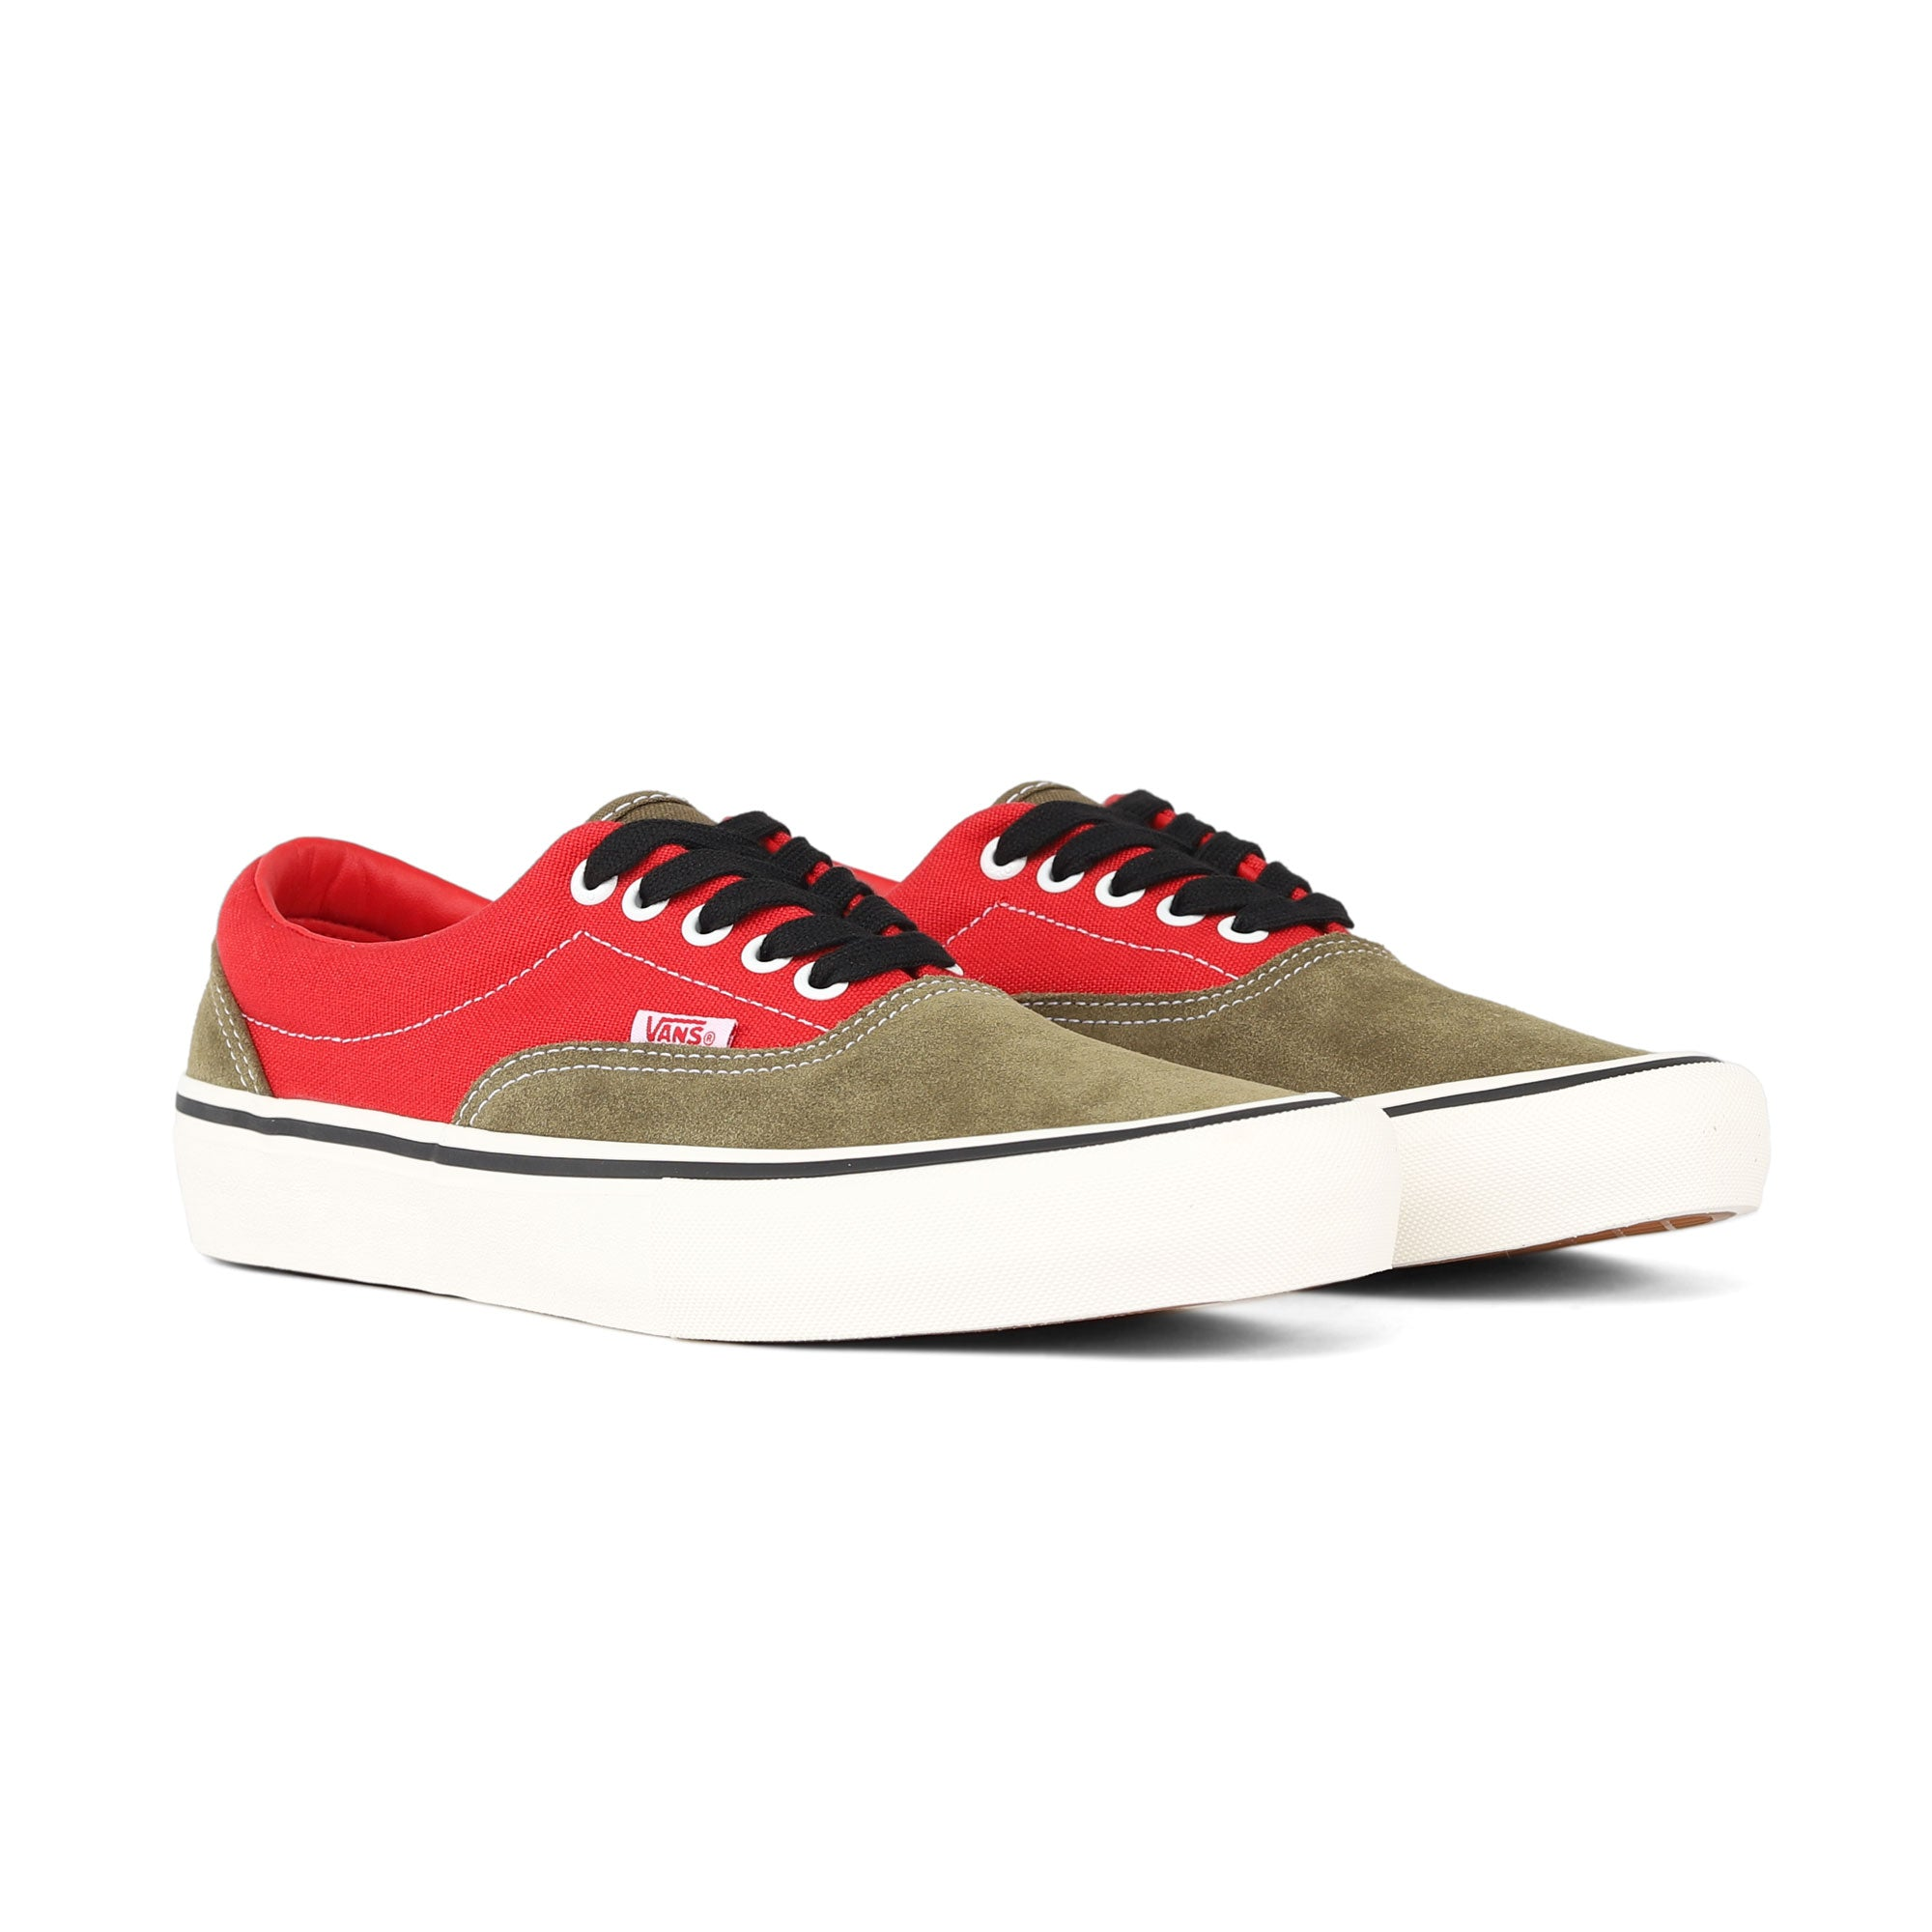 Vans X Lotties Era Pro LTD Product Photo #2